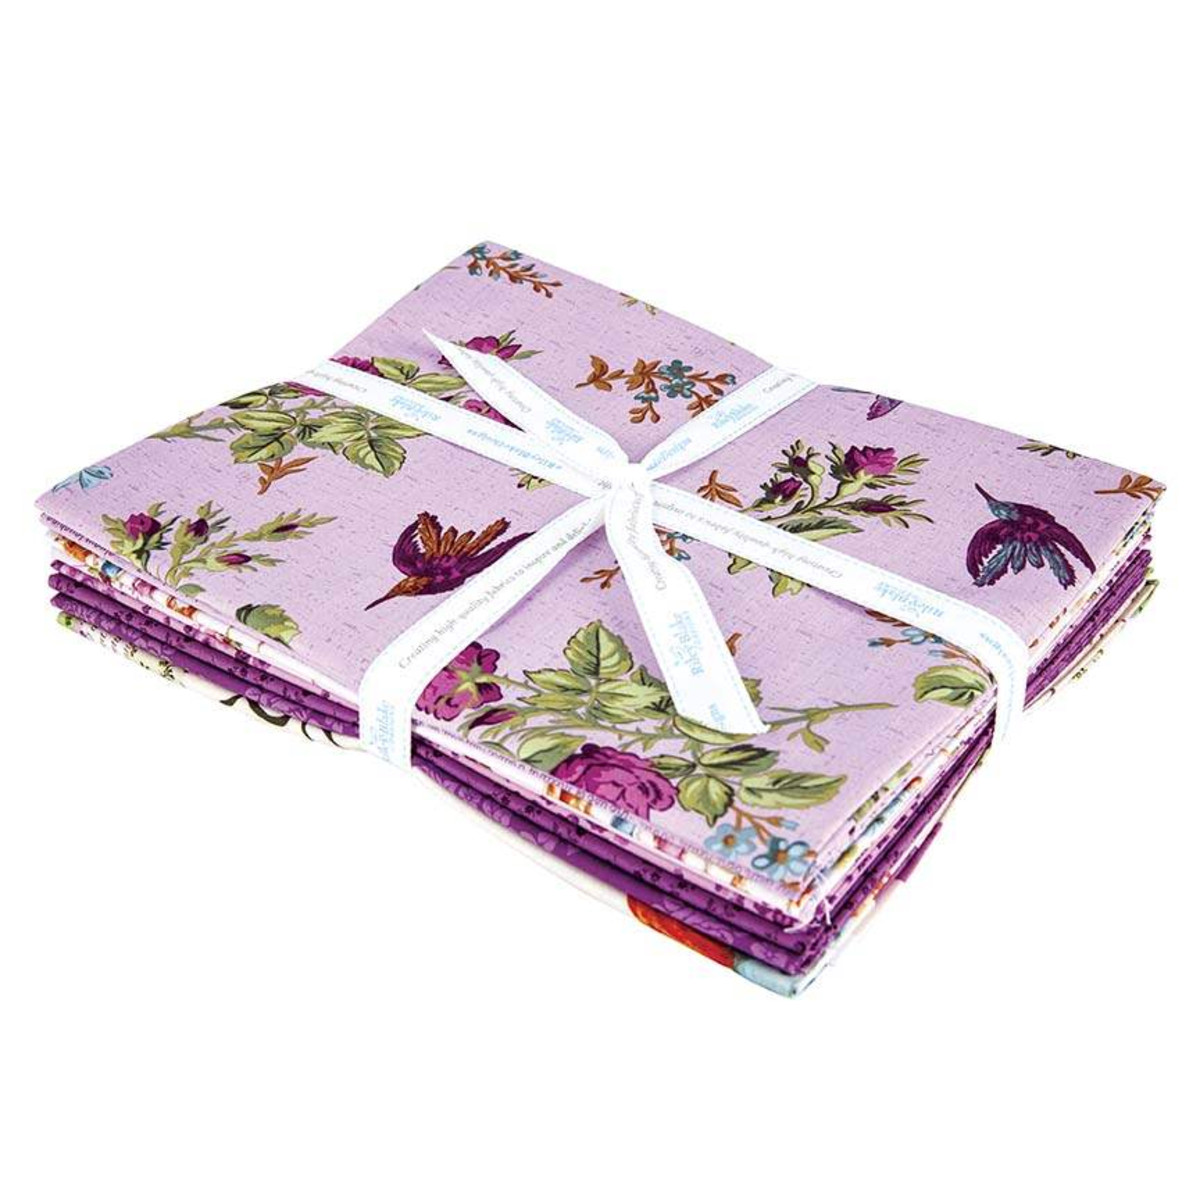 Riley Blake One Yard Bundle - Anne of Green Gables Periwinkle